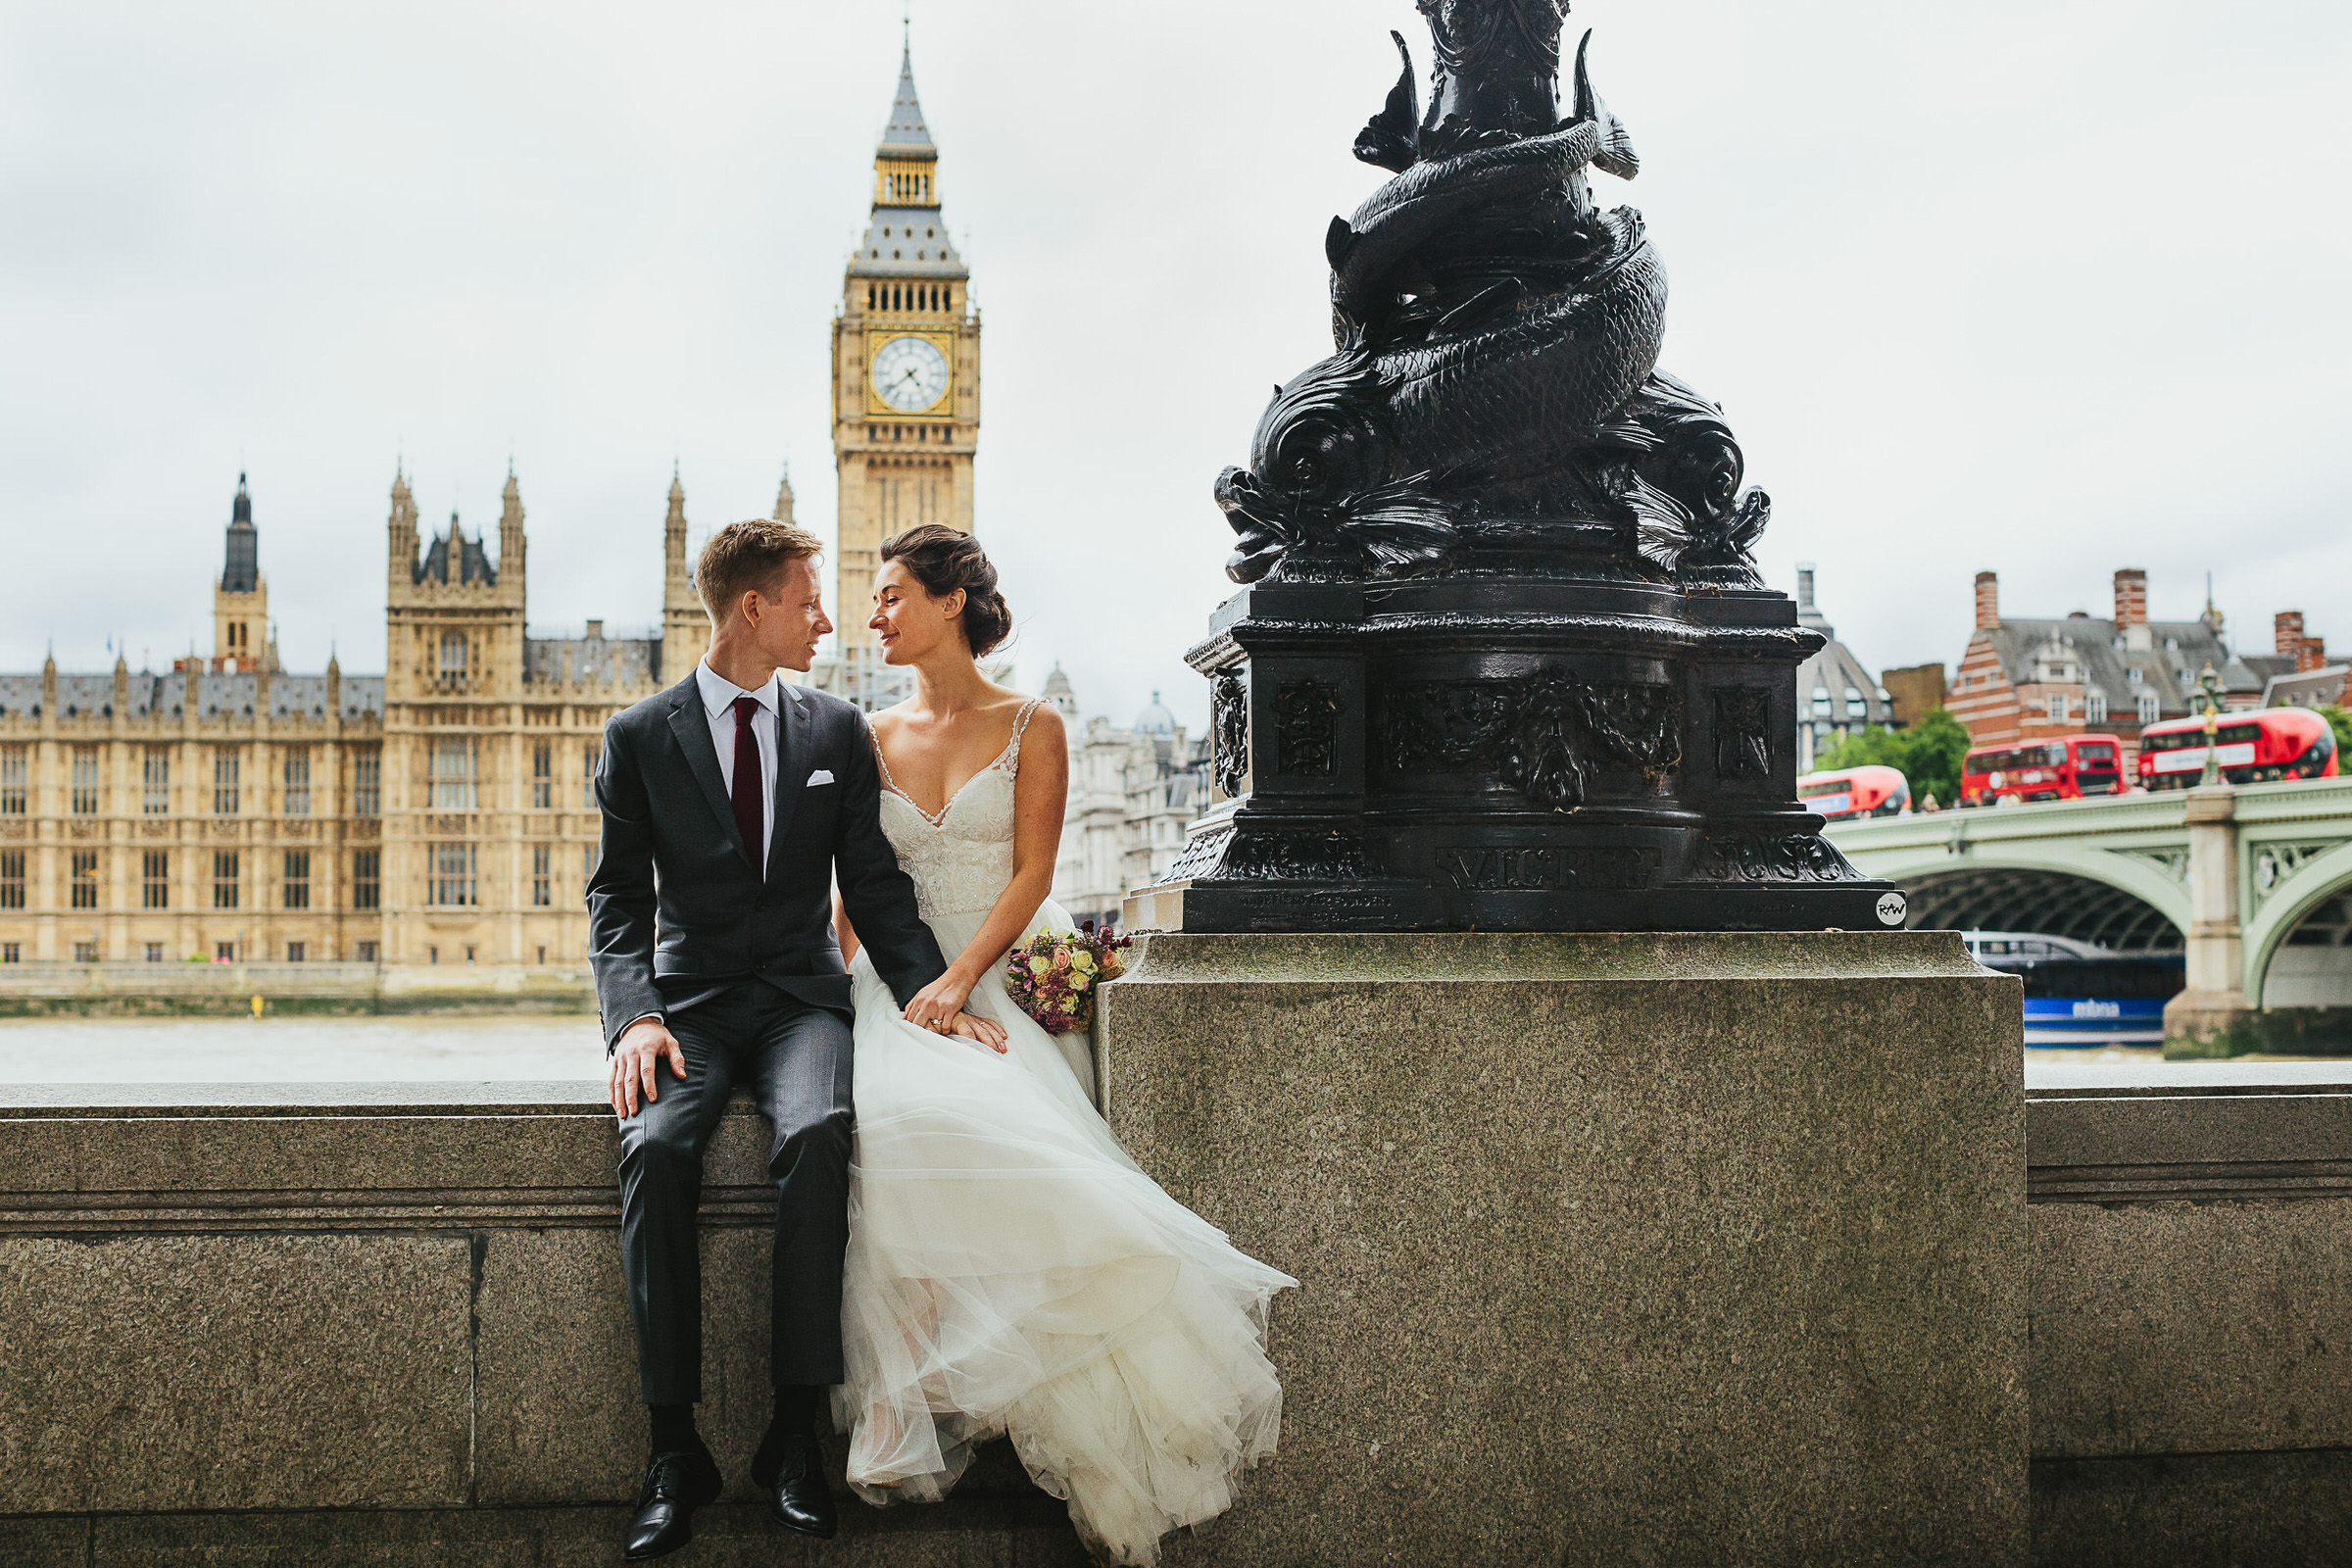 Big Ben wedding photoshoot